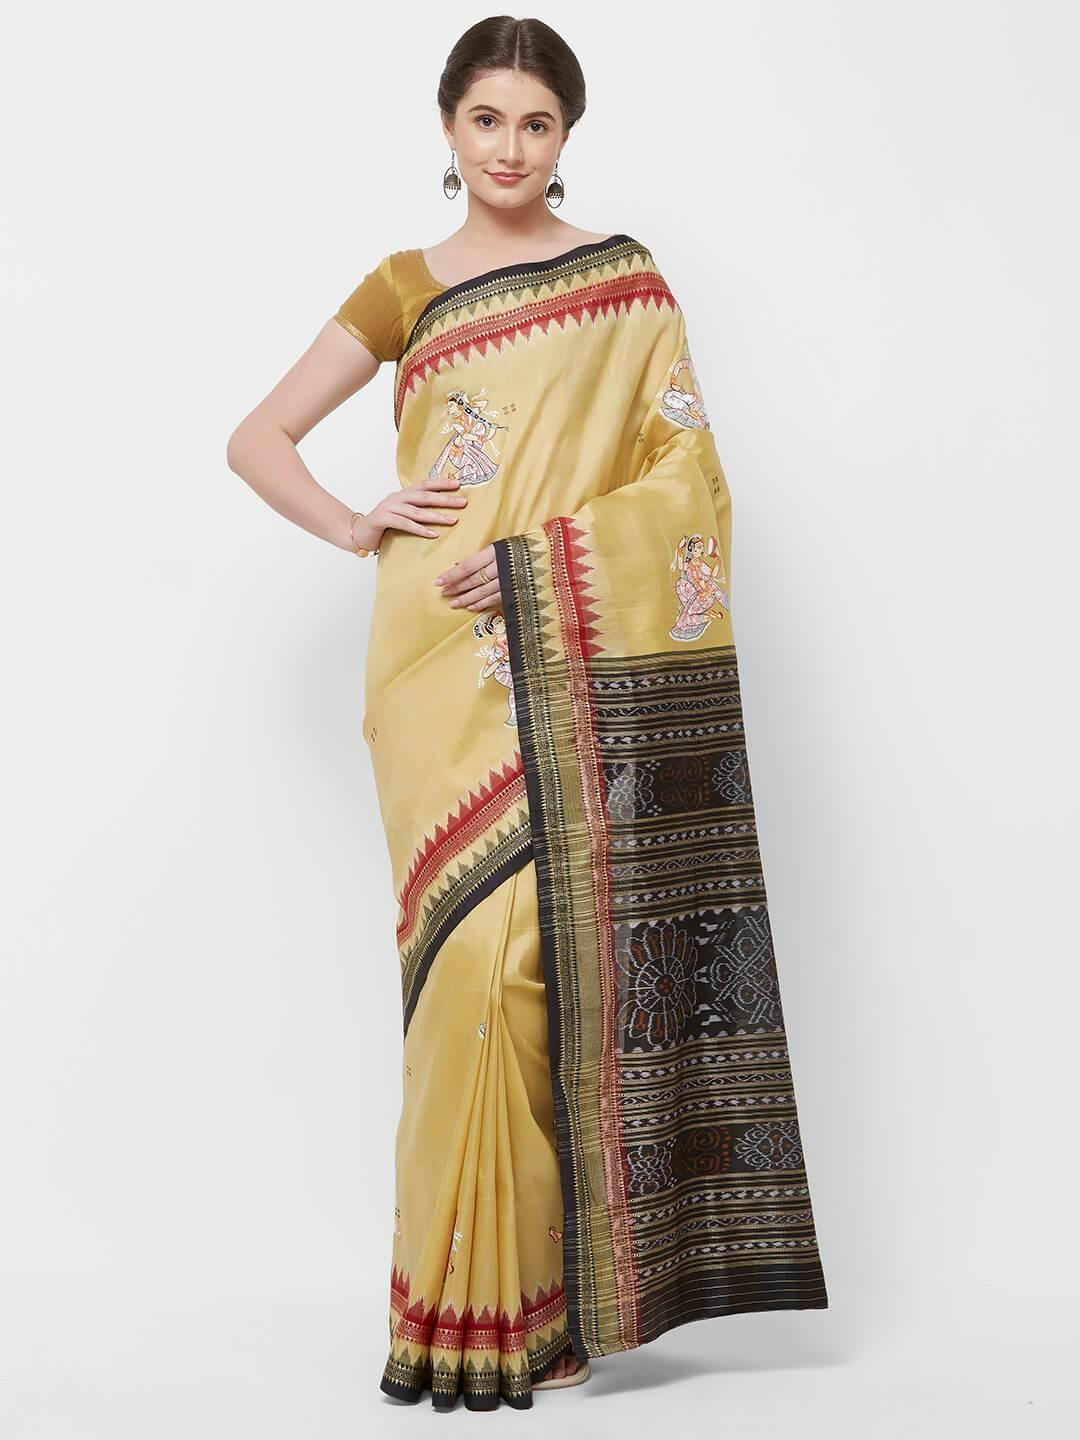 CraftsCollection.in -Cream  Odisha Samablpuri Silk Saree with handpainted Pattachitra motifs